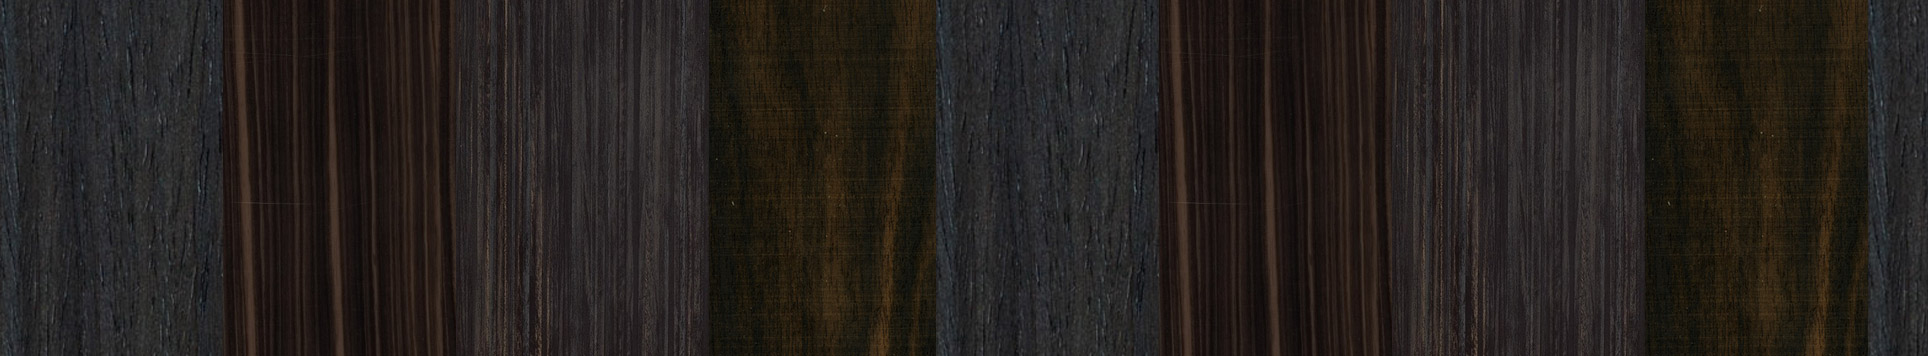 ebony-grain_hu